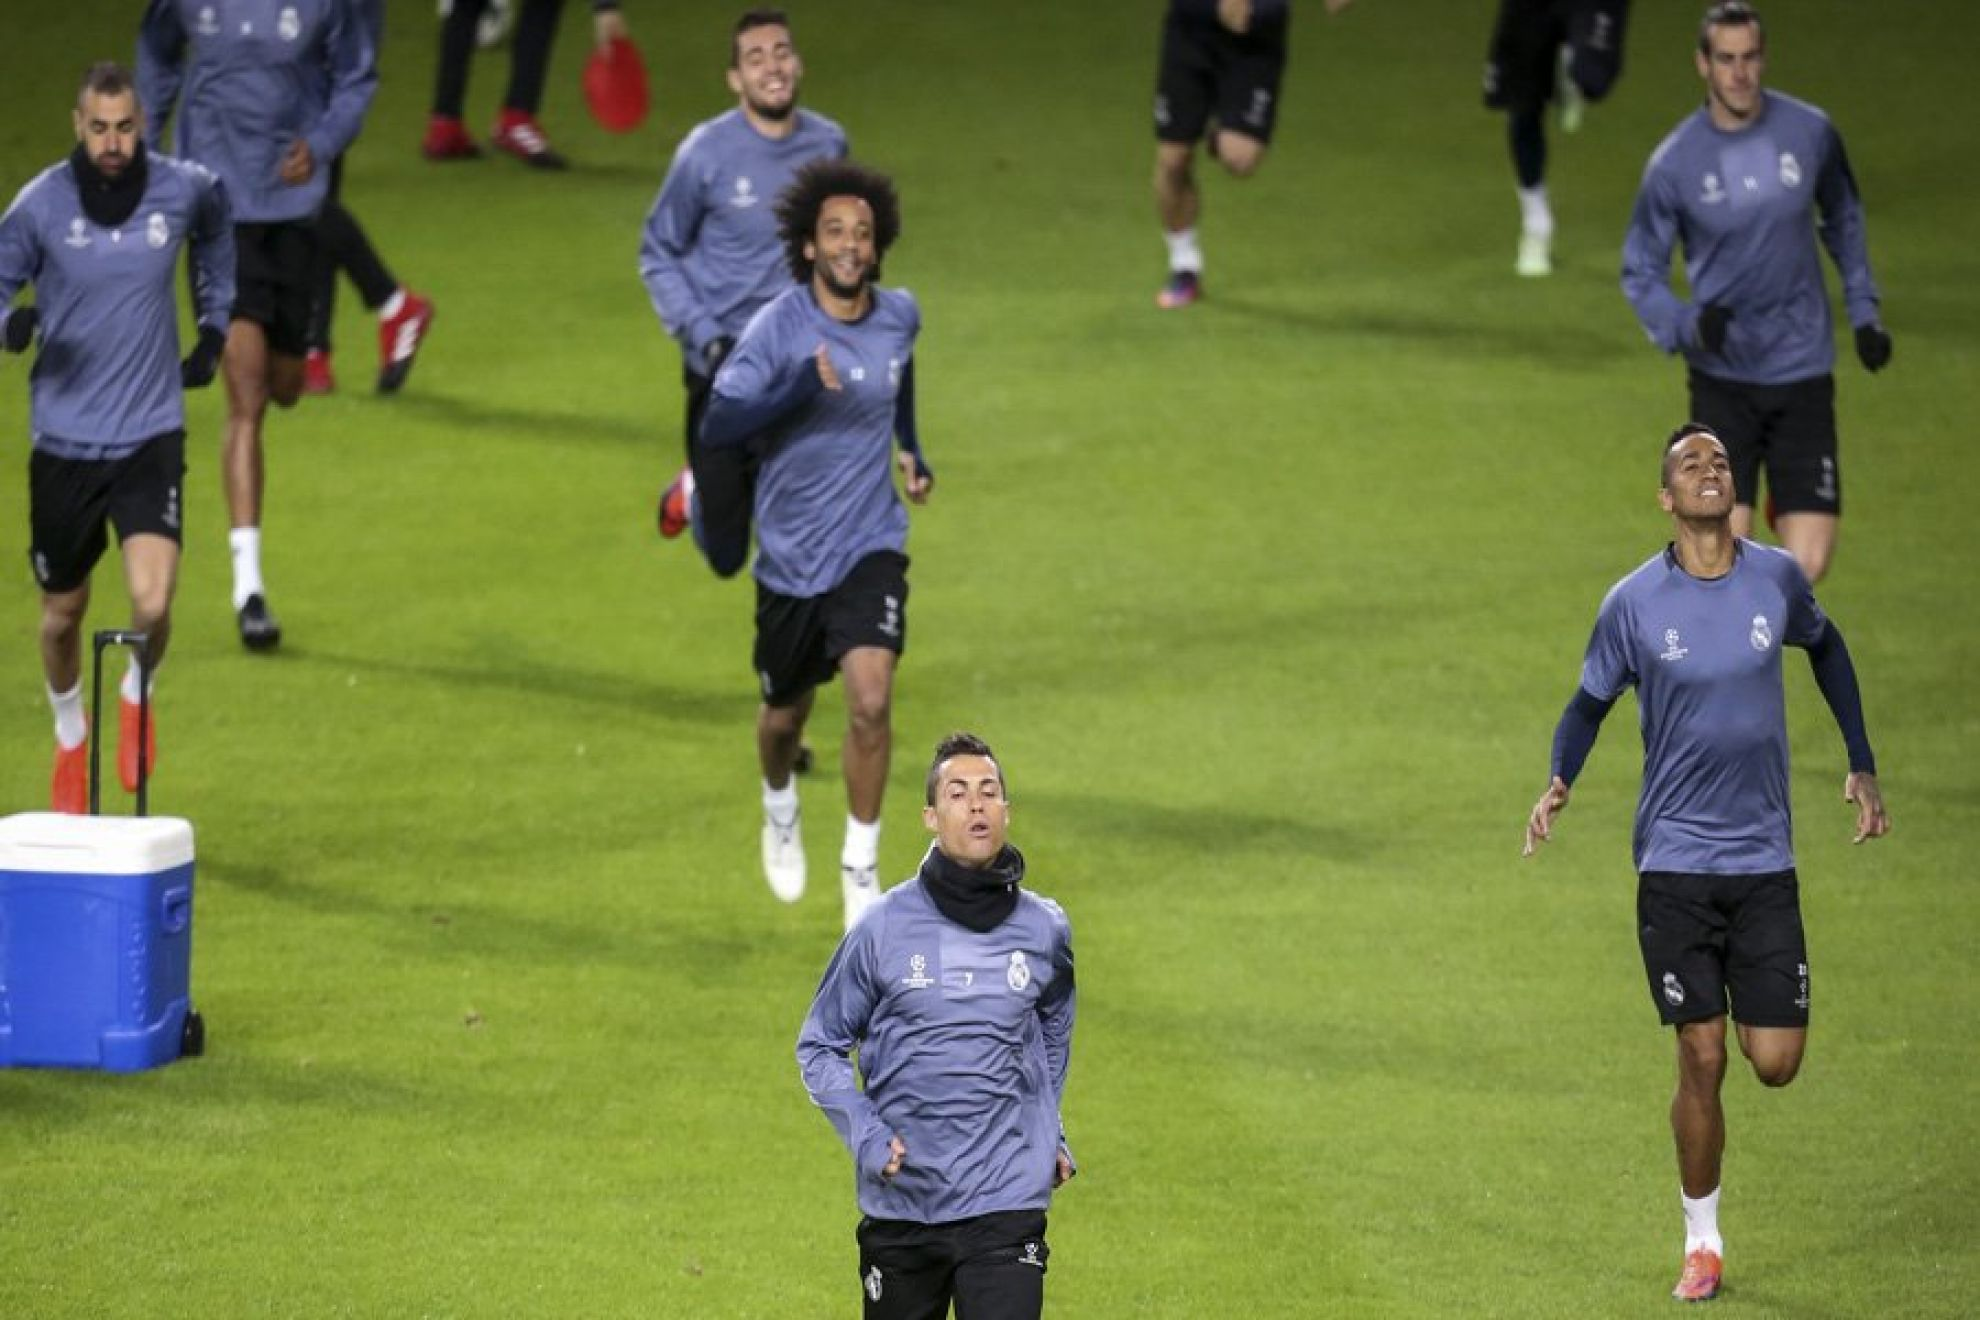 The Warm Up in Professional Soccer: A matter of mind and body!